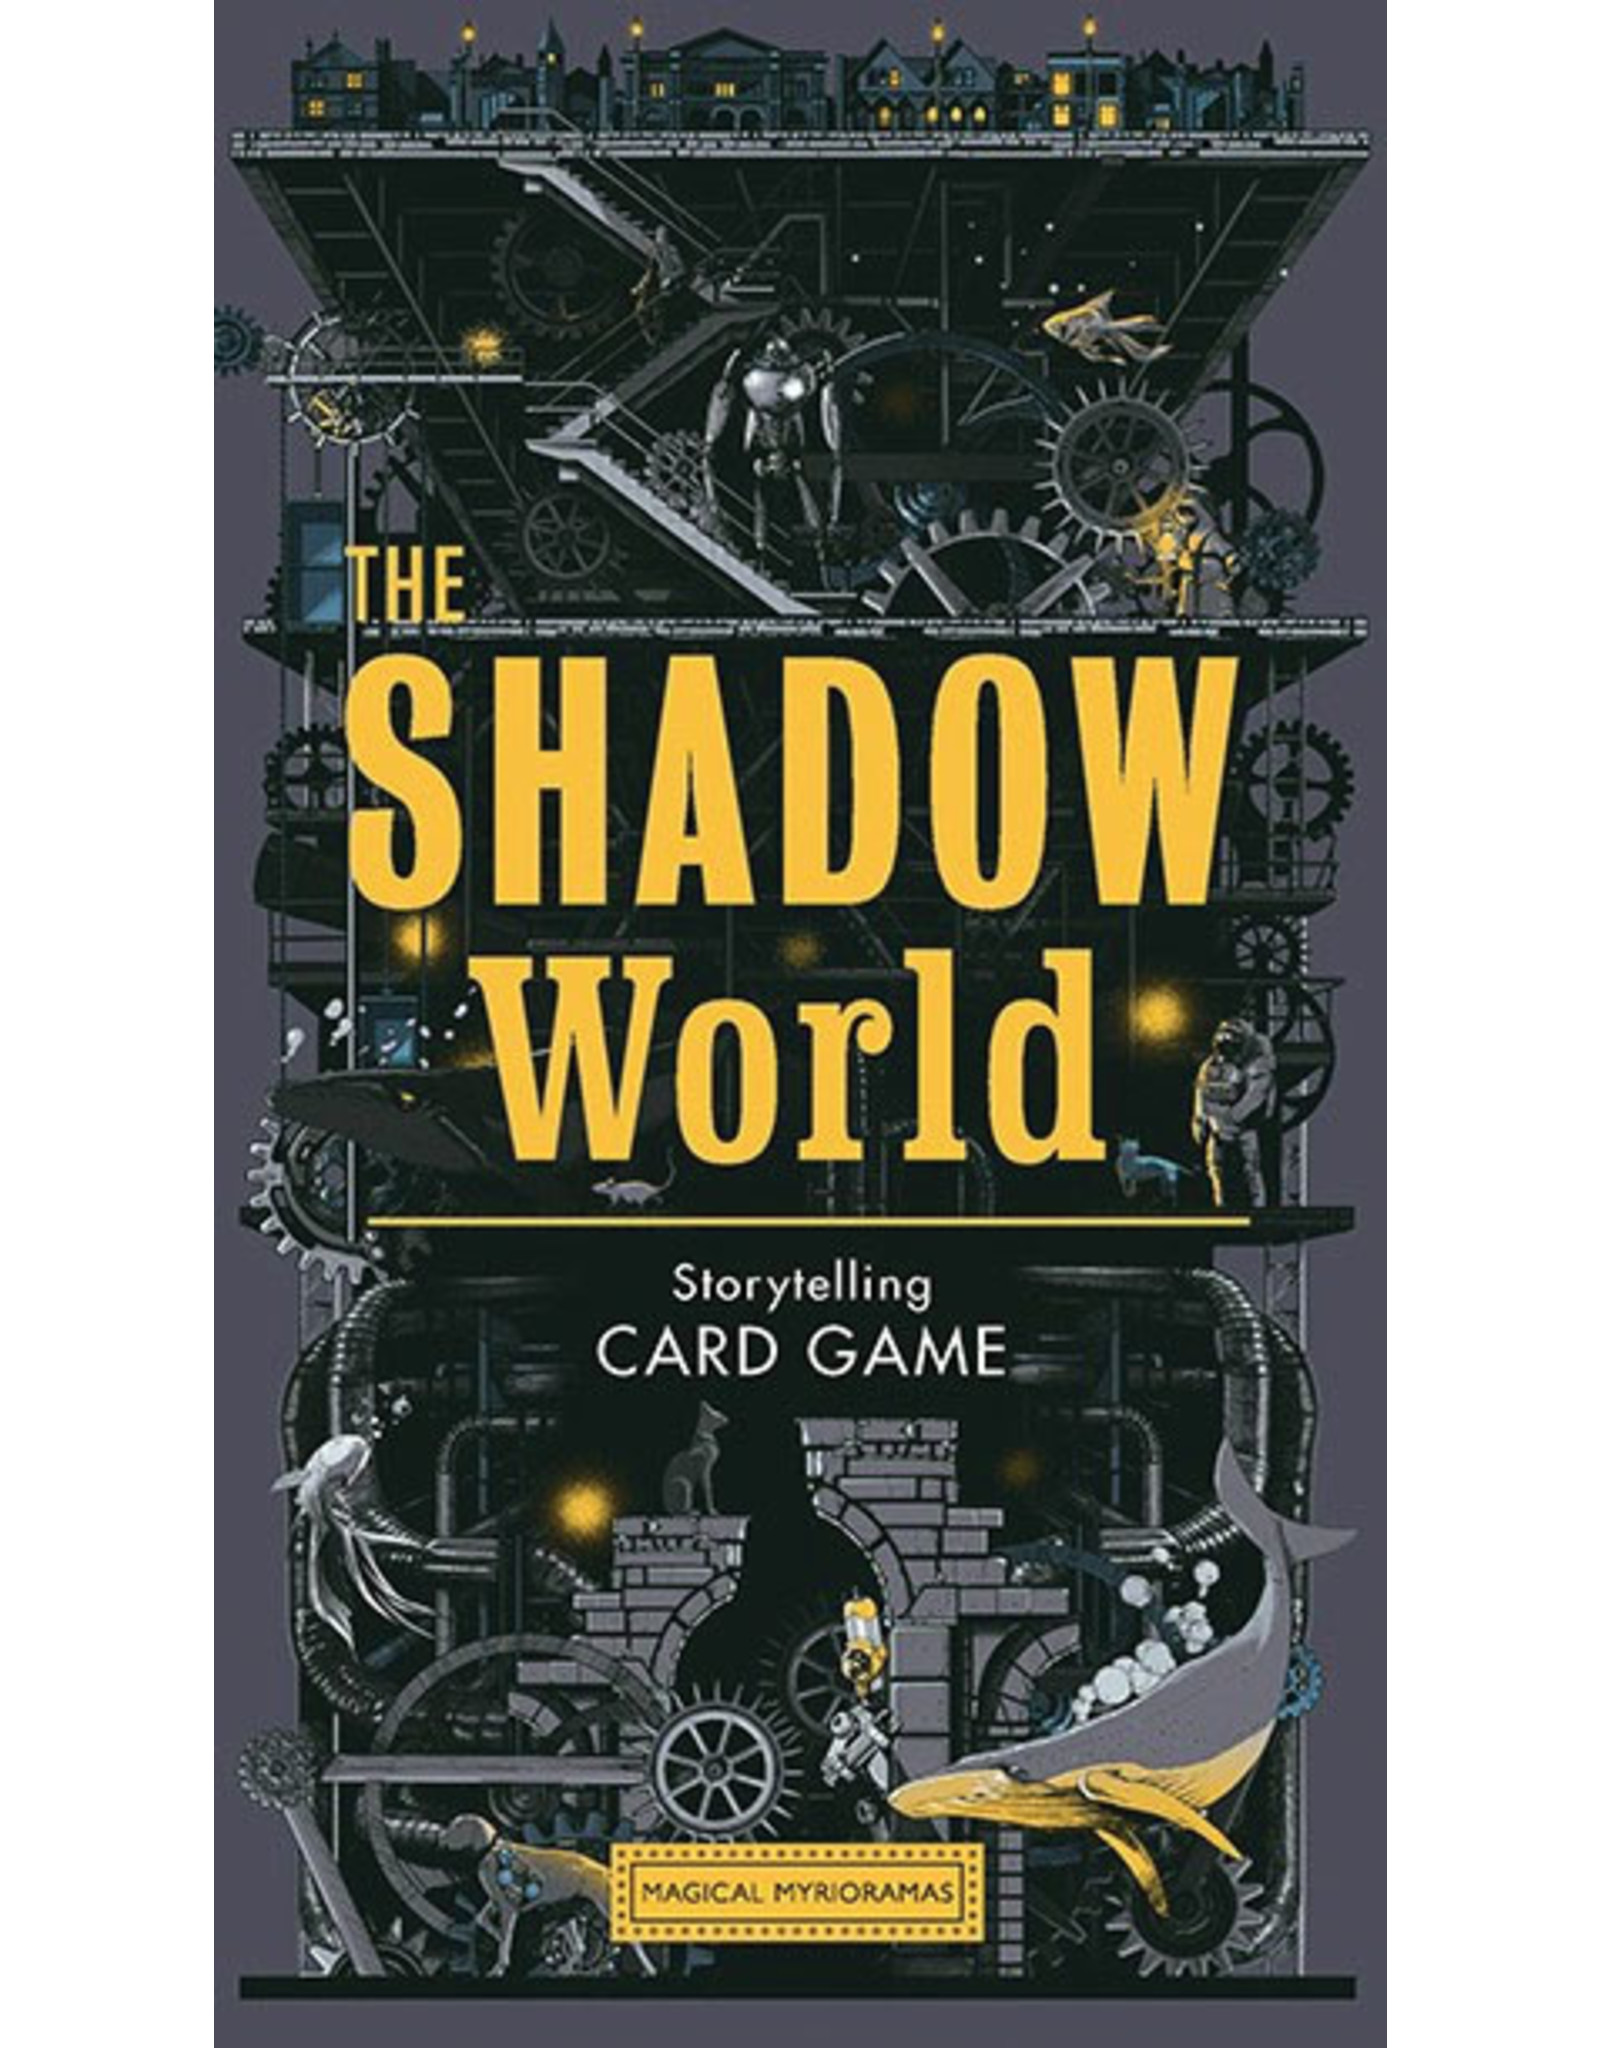 Chronicle Books Storytelling Card Game: The Shadow World